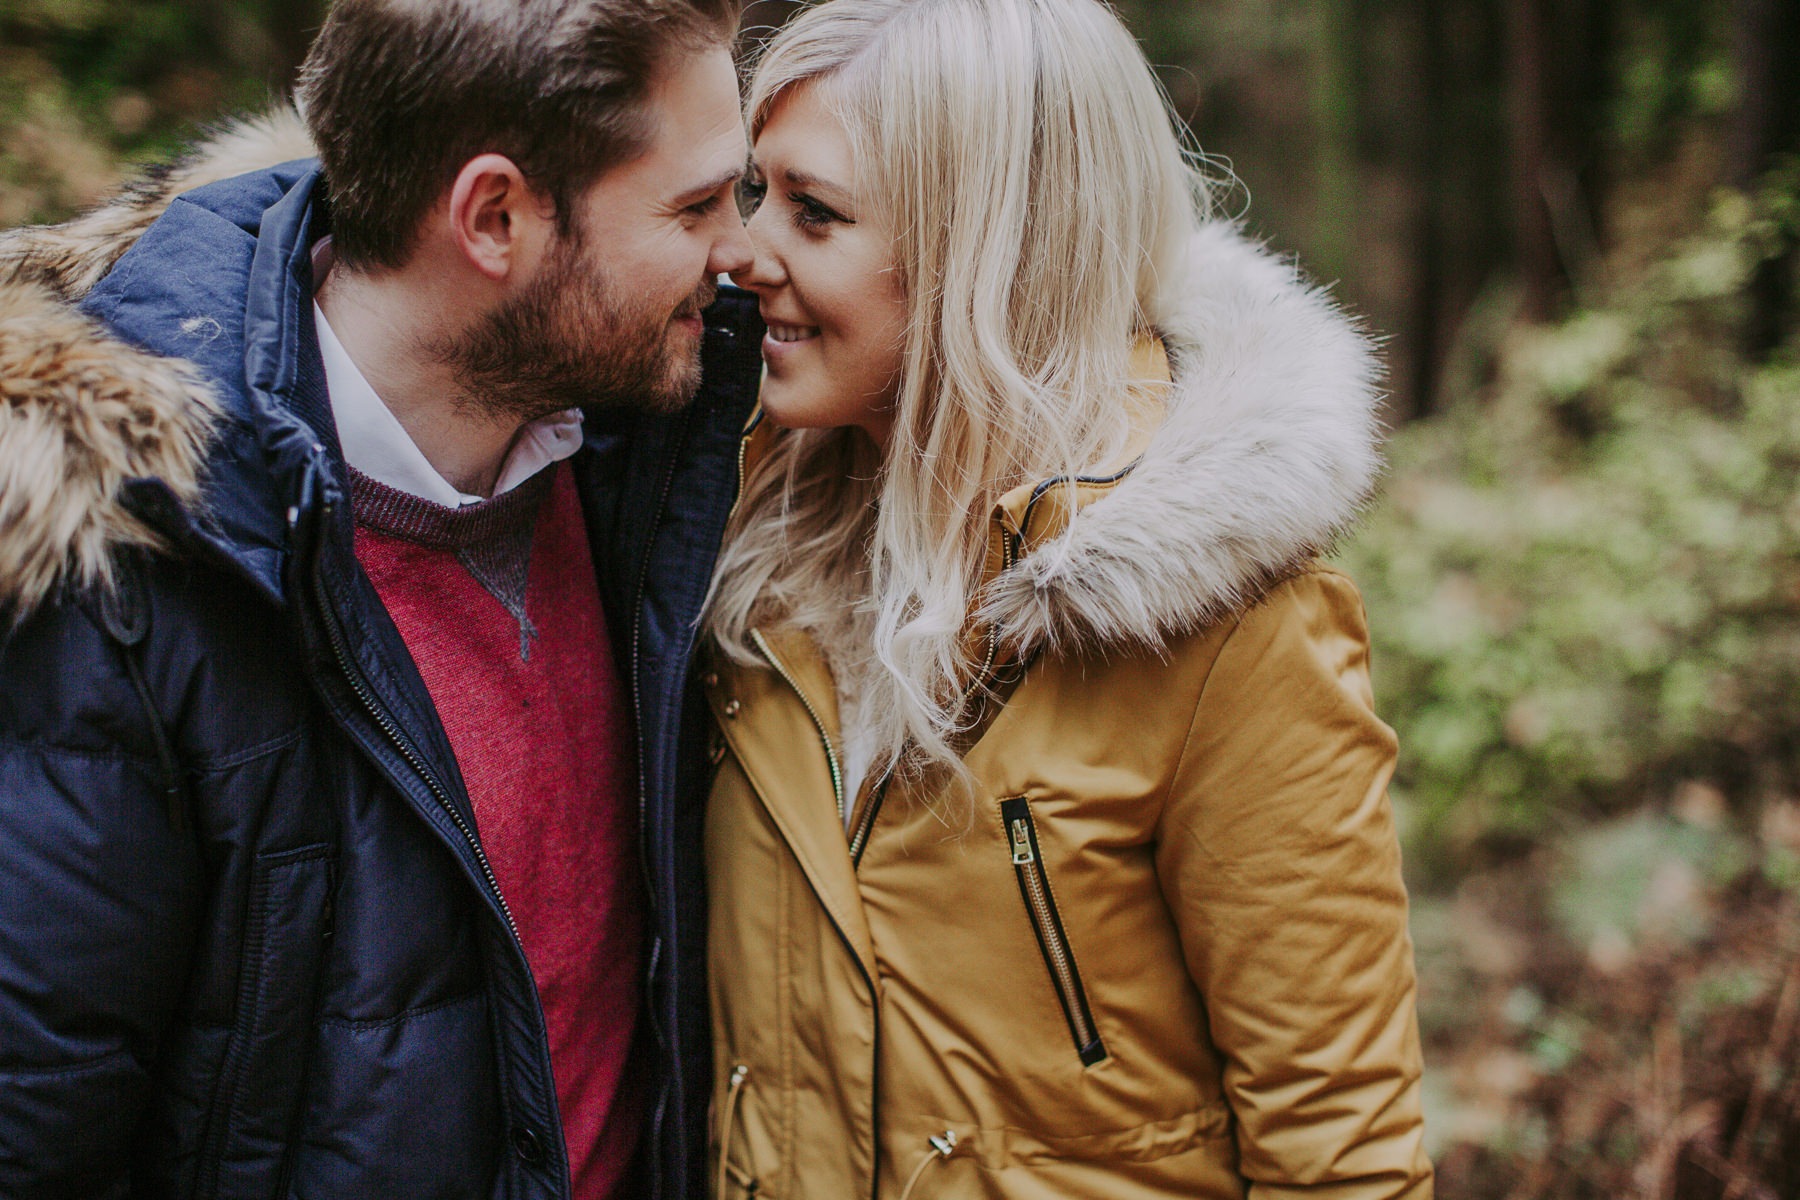 Emily & Phil | Newmillerdam engagement shoot 27